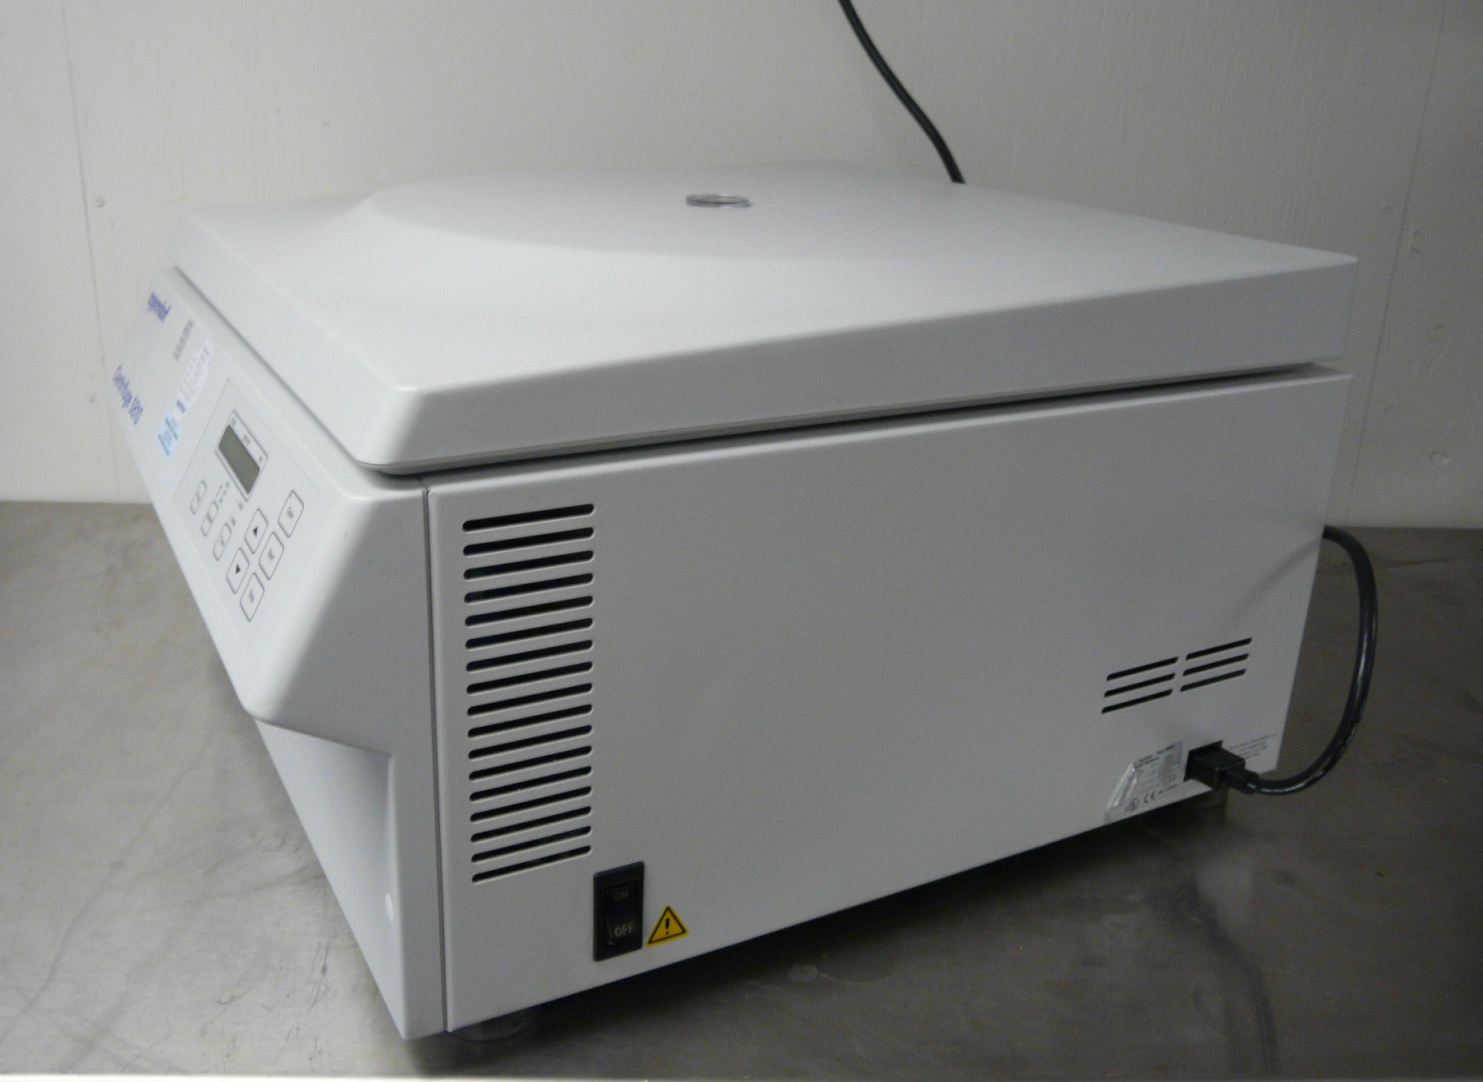 ~ Eppendorf 5810 Benchtop Centrifuge with Rotor and Inserts